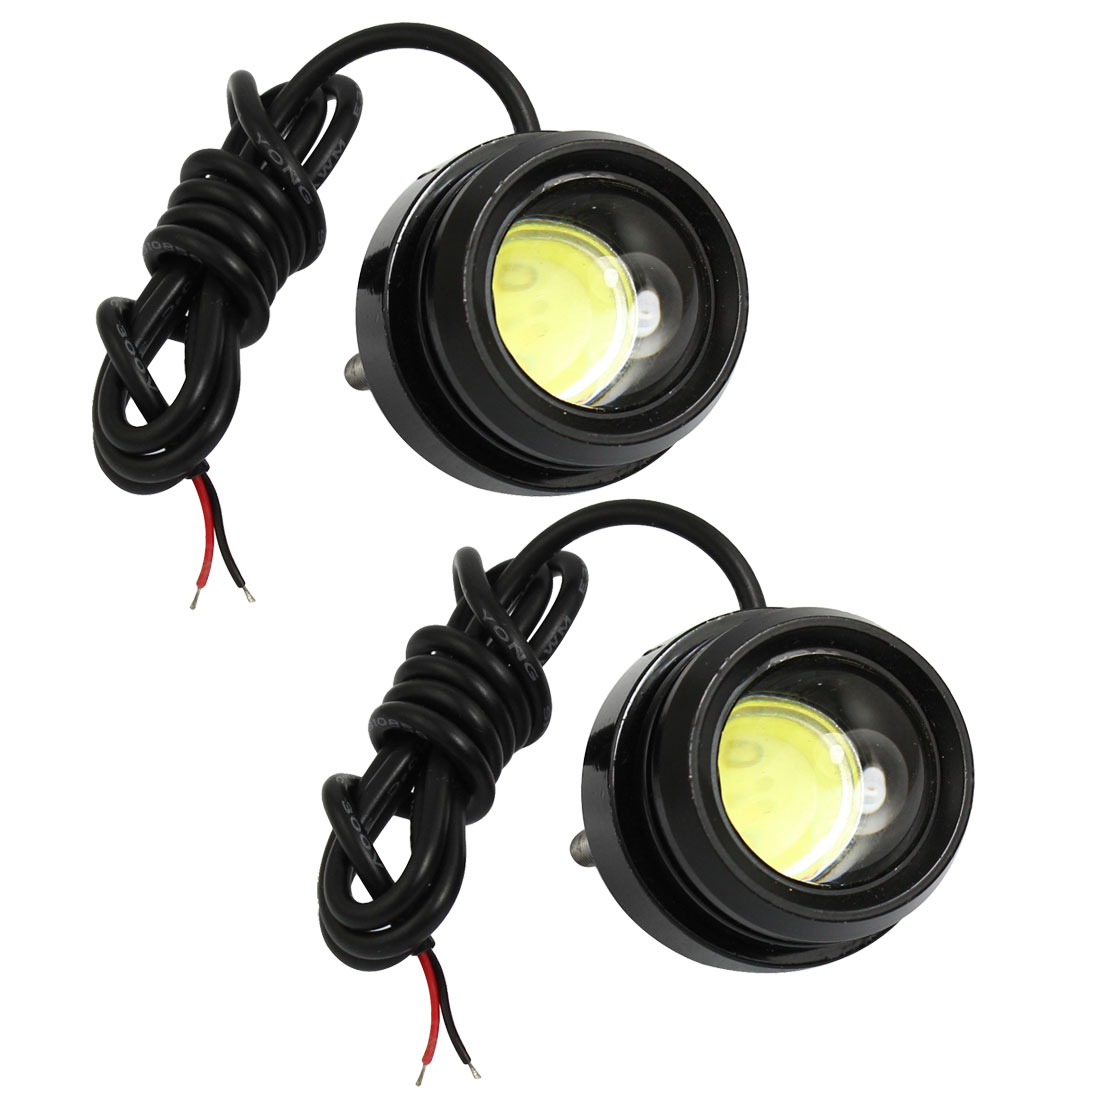 2pcs DC 12V 3W White LED Day Time Running Light for Vehicle Car